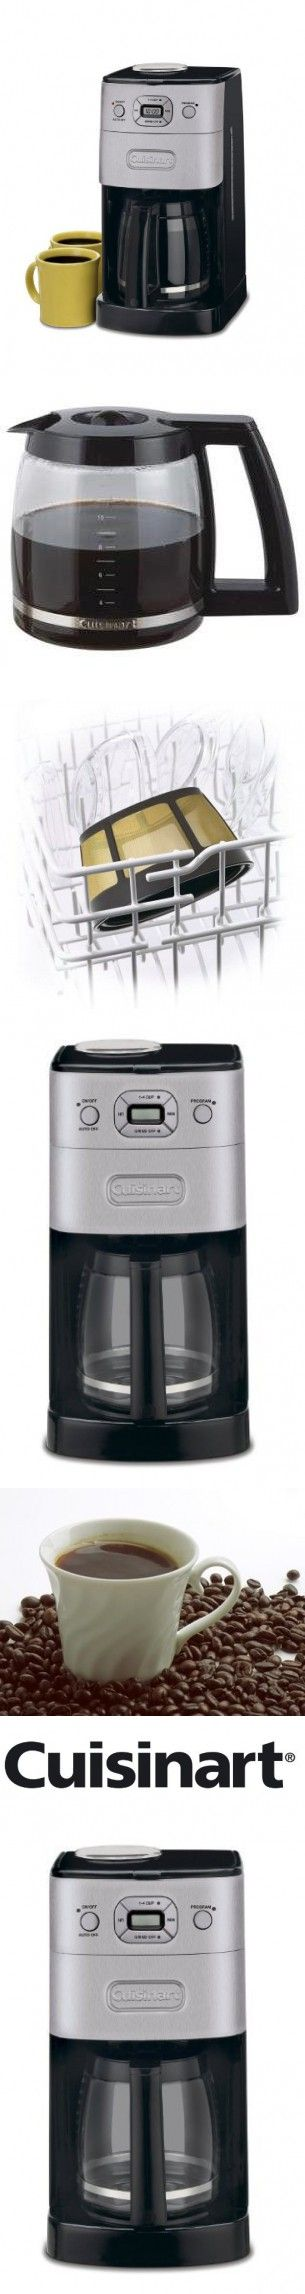 Cuisinart Grind-and-Brew 12-Cup Automatic Coffeemaker, Grinds Coffee Beans Fresh for Brewing, Features a 12 Cup Glass Carafe with Pause and Brew Feature and Adjustable Shutoff, has 1-4 Cup Brewing Feature, Includes Gold Tone Charcoal Water Filter